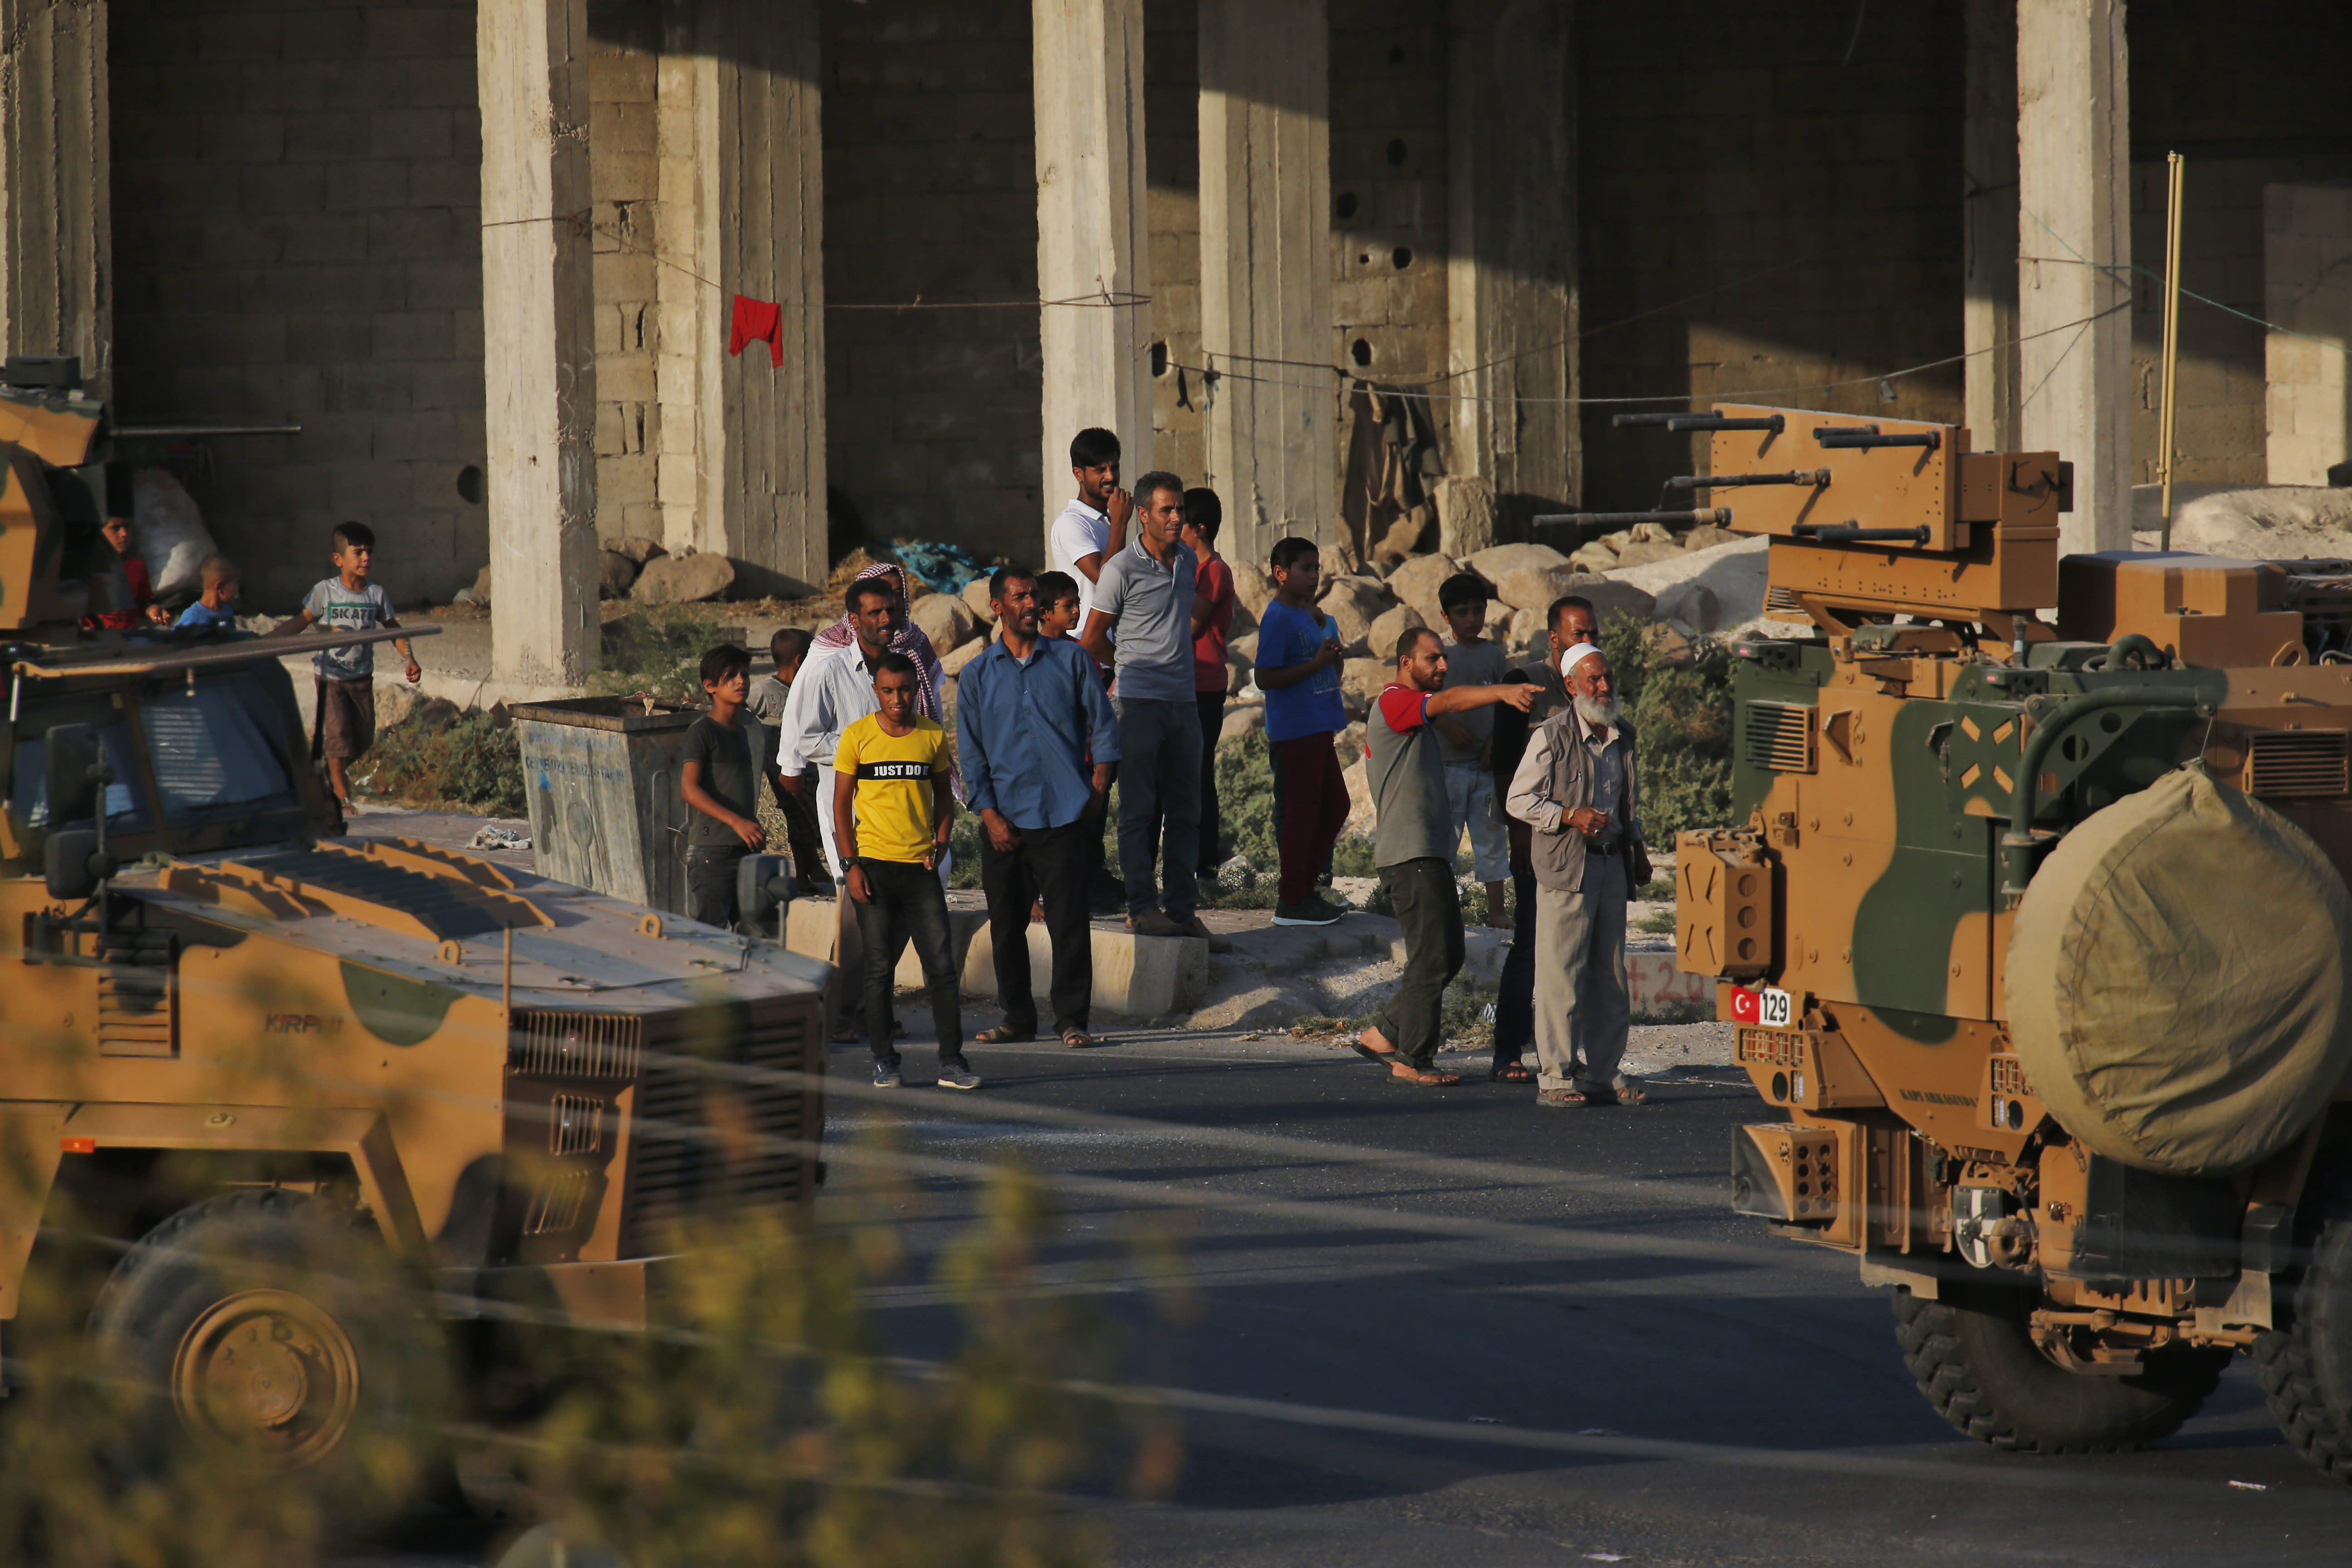 Shortly after the Turkish operation inside Syria had started, local residents cheer and applaud as a convoy of Turkish forces vehicles is driven through the town of Akcakale, Sanliurfa province, southeastern Turkey, at the border between Turkey and Syria, Wednesday, Oct. 9, 2019. Turkey launched a military operation Wednesday against Kurdish fighters in northeastern Syria after U.S. forces pulled back from the area, with a series of airstrikes hitting a town on Syria's northern border.(AP Photo/Lefteris Pitarakis)